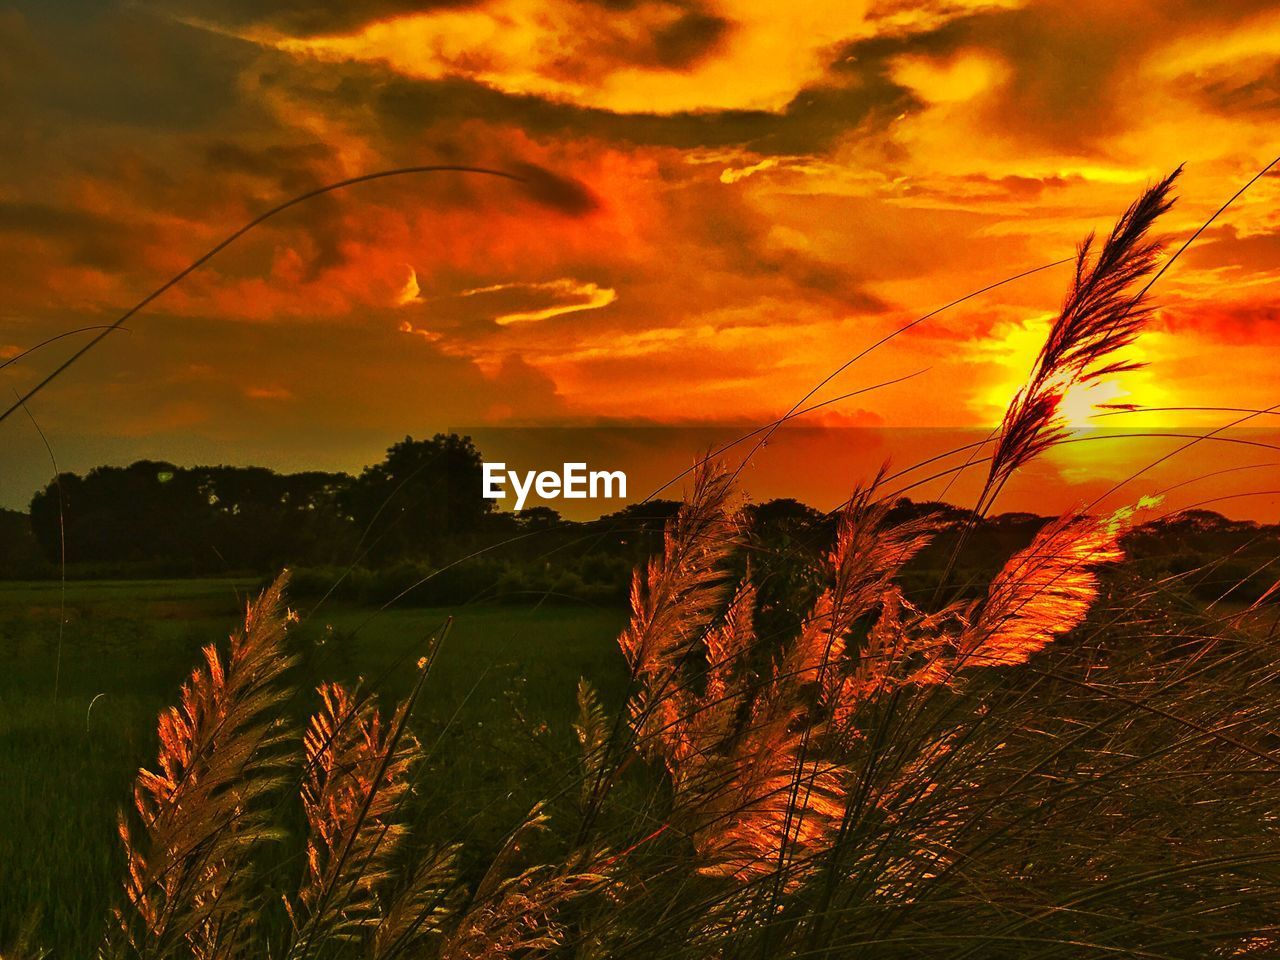 growth, sunset, nature, plant, tranquil scene, beauty in nature, scenics, tranquility, no people, field, outdoors, cereal plant, agriculture, sky, rural scene, cloud - sky, landscape, grass, tree, close-up, day